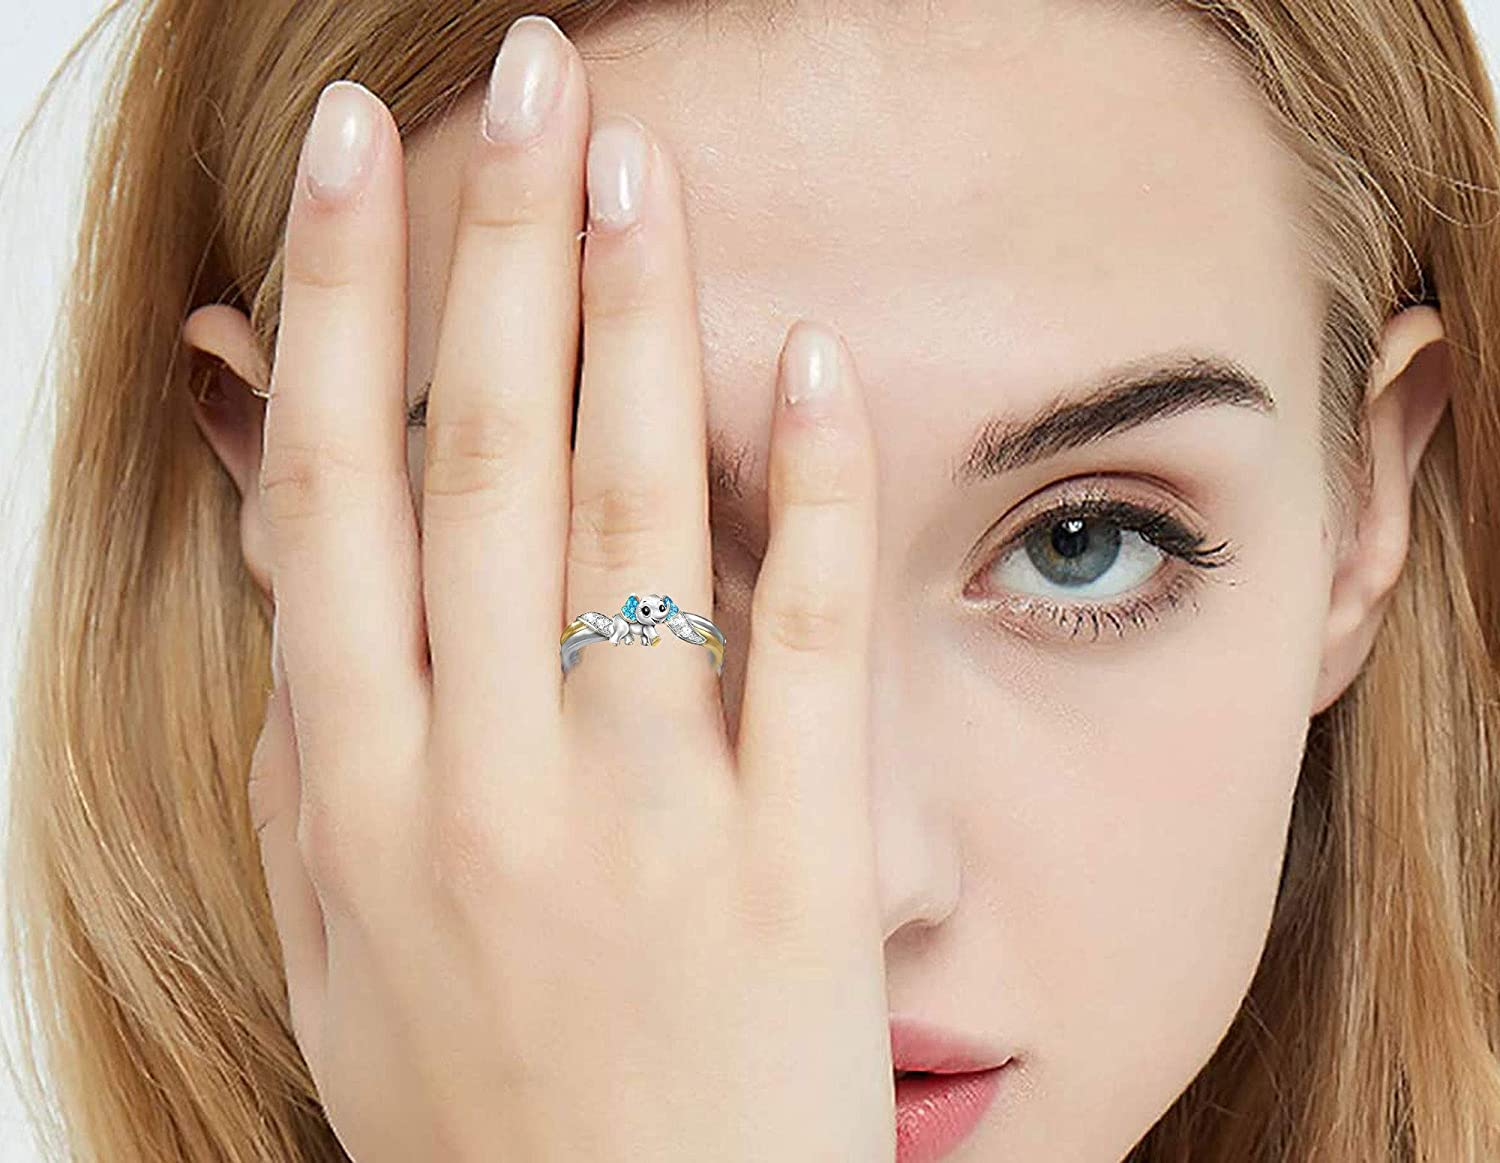 BFJLIFE 2021 Rings for Women Teen Girls Personalized Fashion Statement Rings Diamond Microinlaid Metal Jewelry Gift for Friends Family